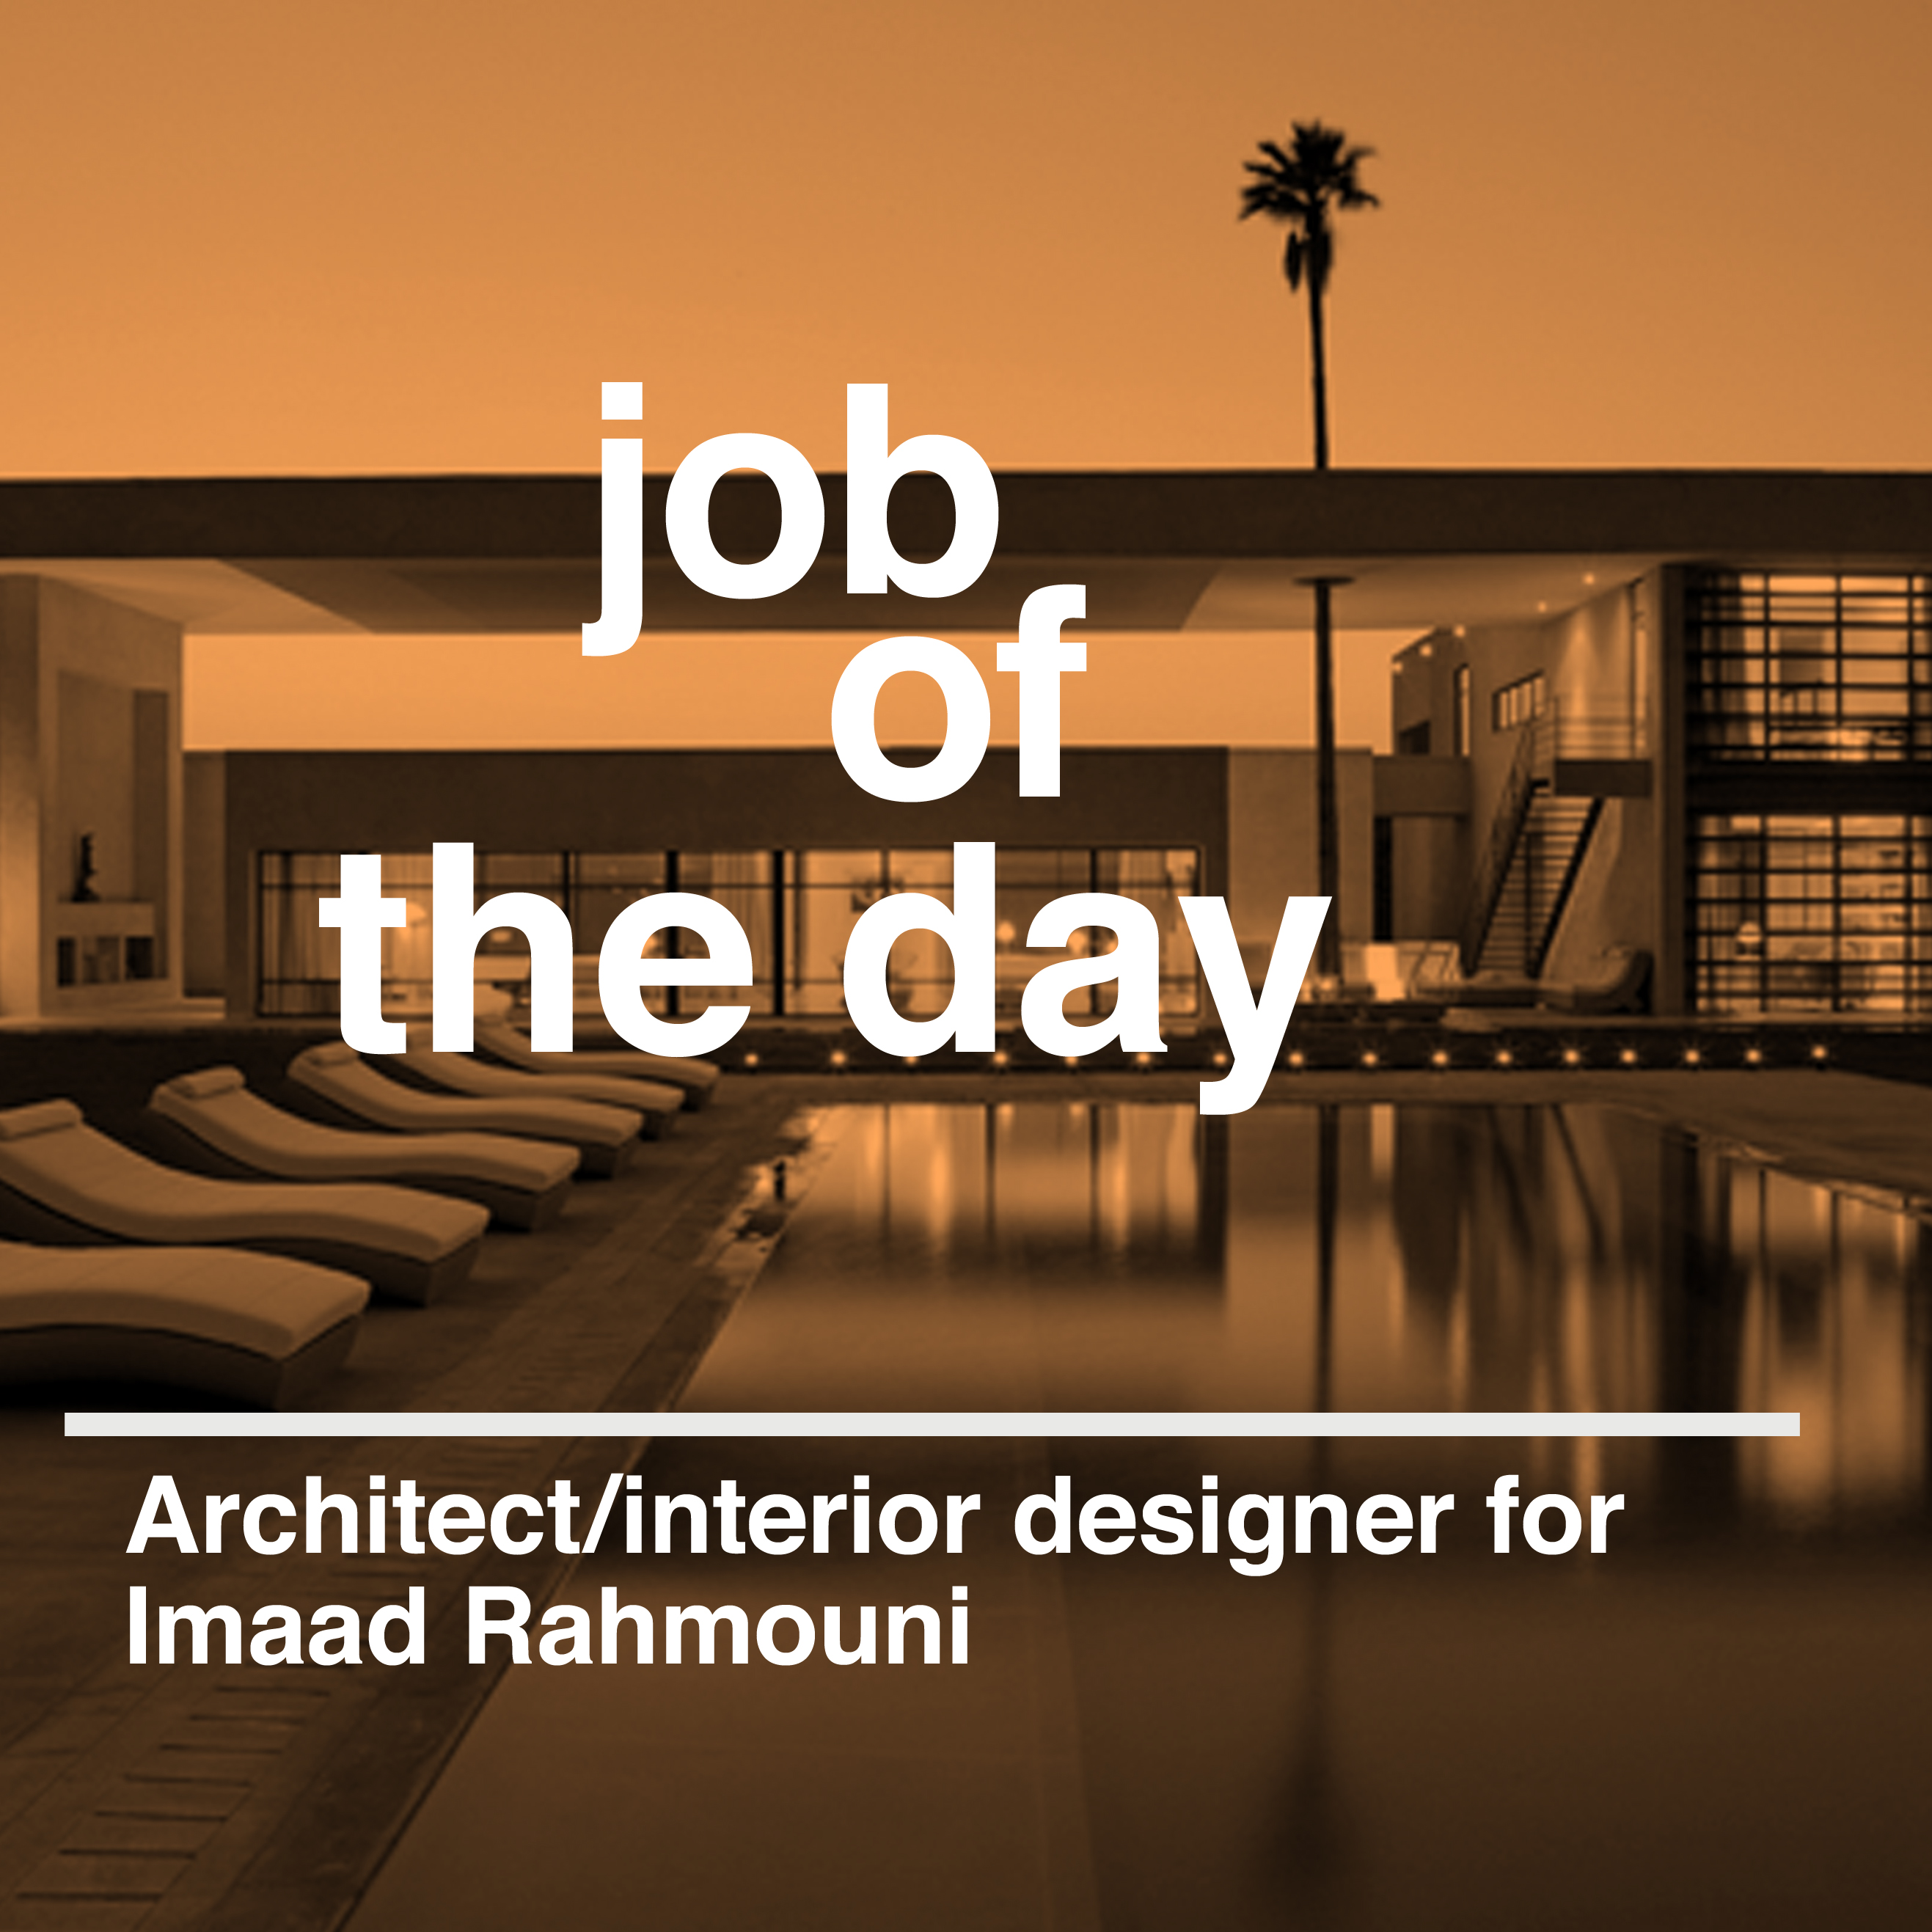 Job Of The Day Architect Interior Designer At Imaad Rahmouni In Marrakech